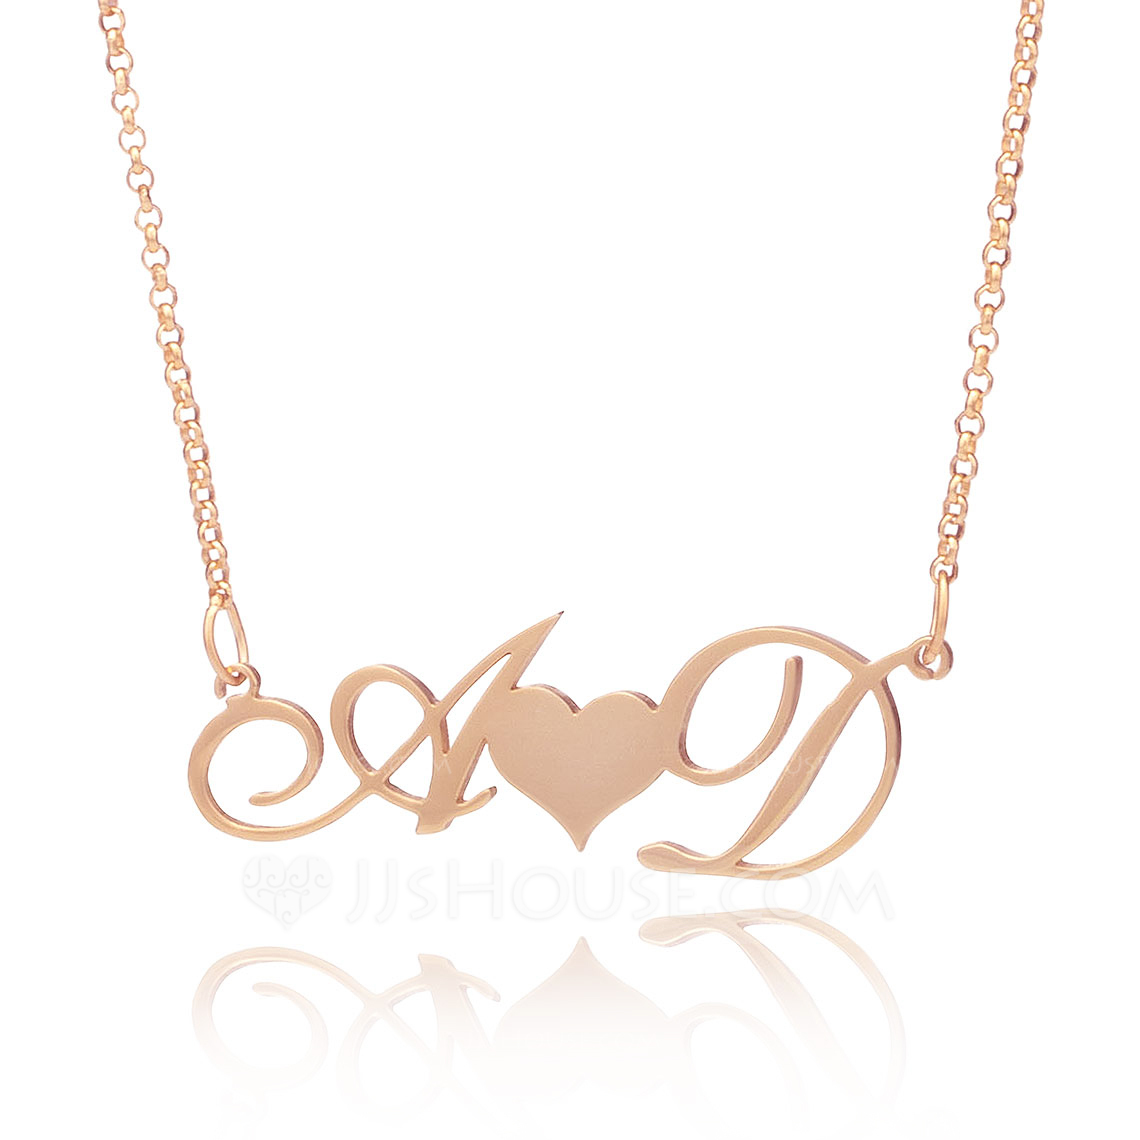 Custom 18k Rose Gold Plated Silver Letter Two Heart Necklace Initial Necklace With Heart - Birthday Gifts Mother's Day Gifts